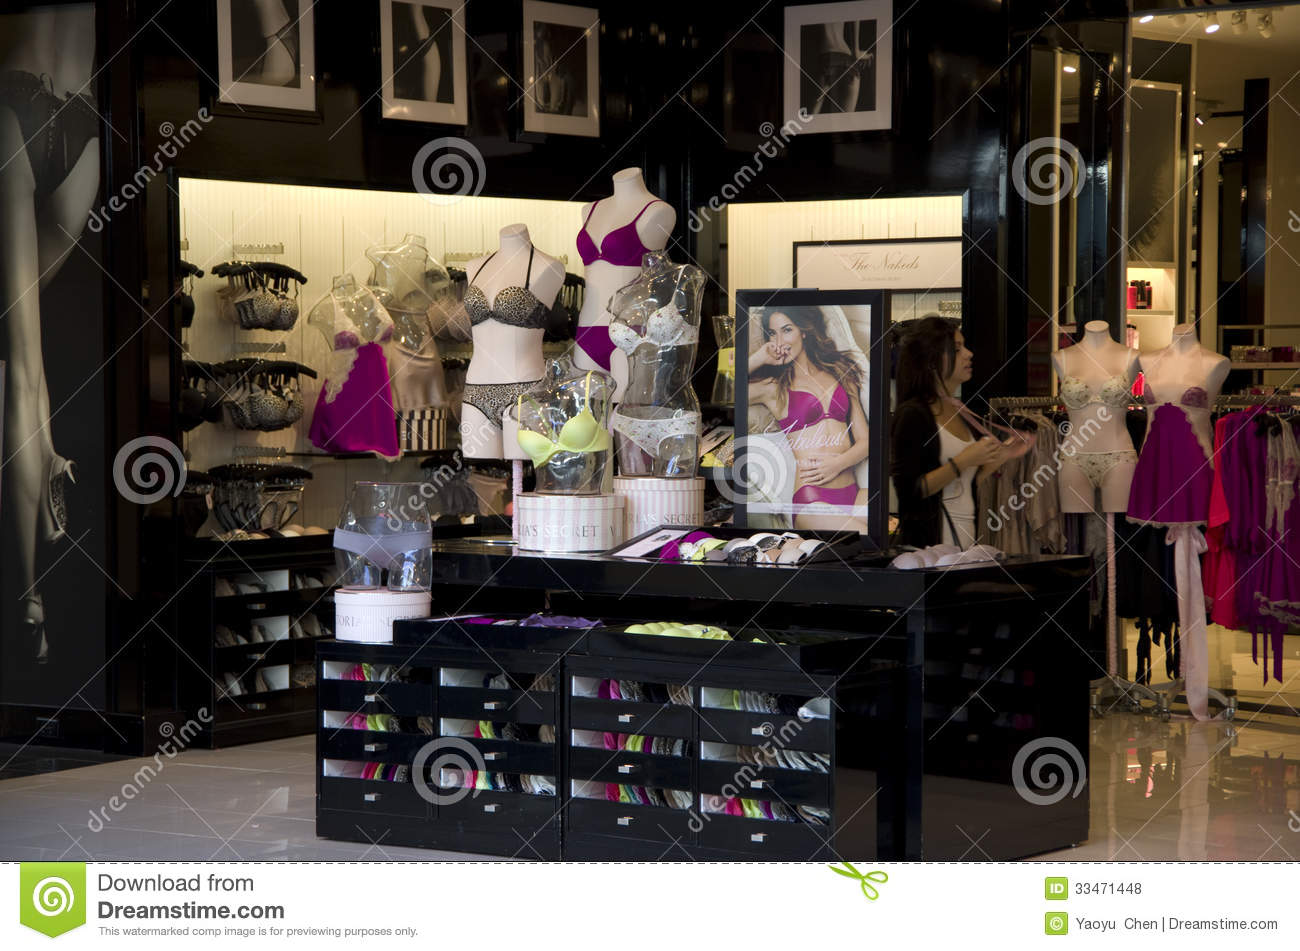 Magasin de sous v tements de victoria s secret photo stock for A l interieur des gentils